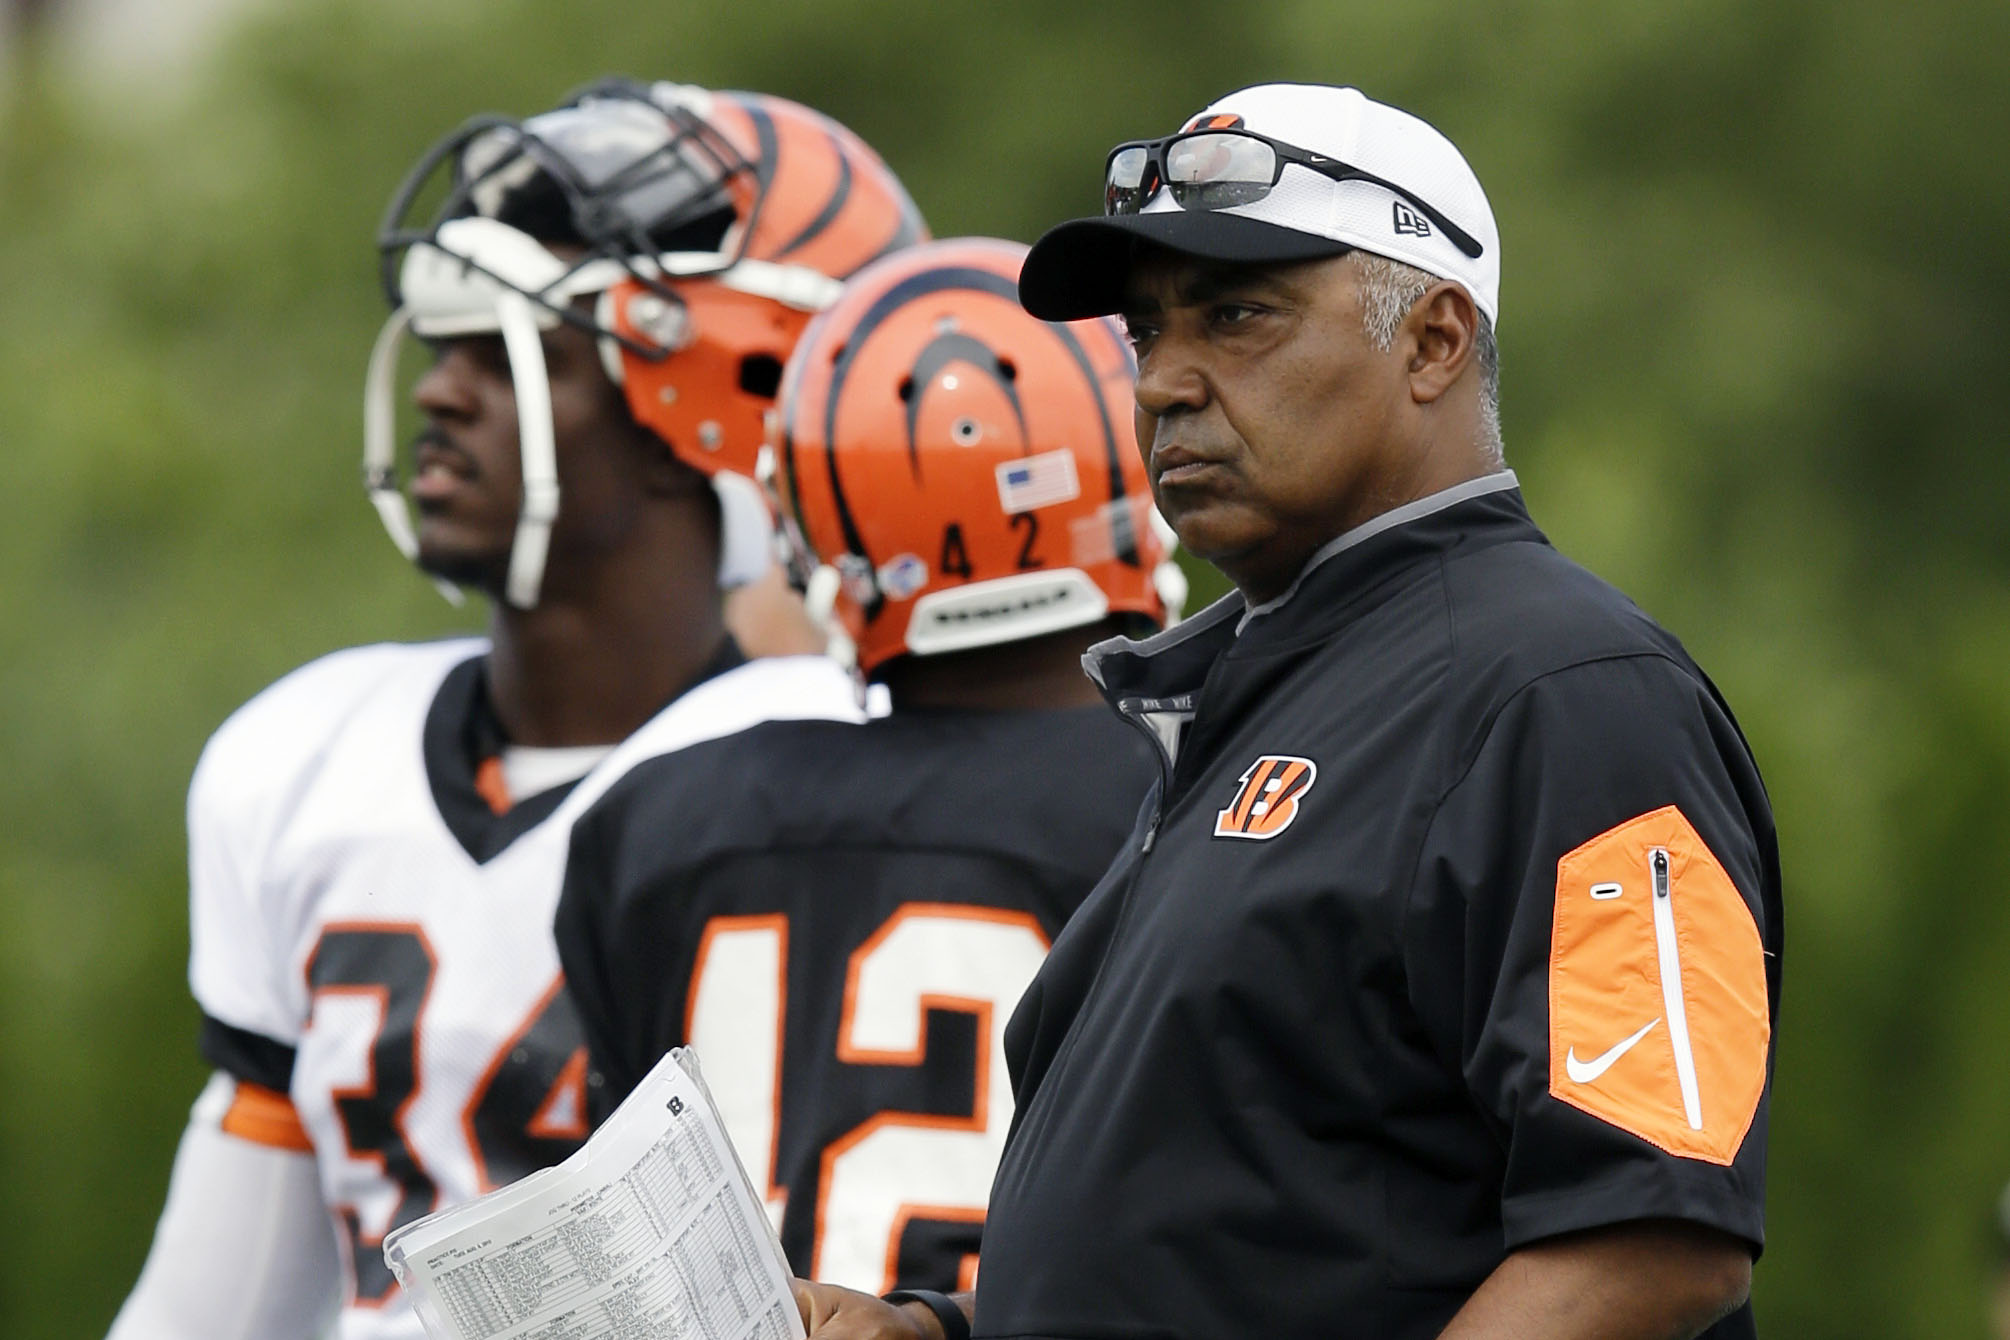 Cincinnati Bengals head coach Marvin Lewis watches during NFL football training camp, Tuesday, Aug. 4, 2015, in Cincinnati. (AP Photo/John Minchillo)